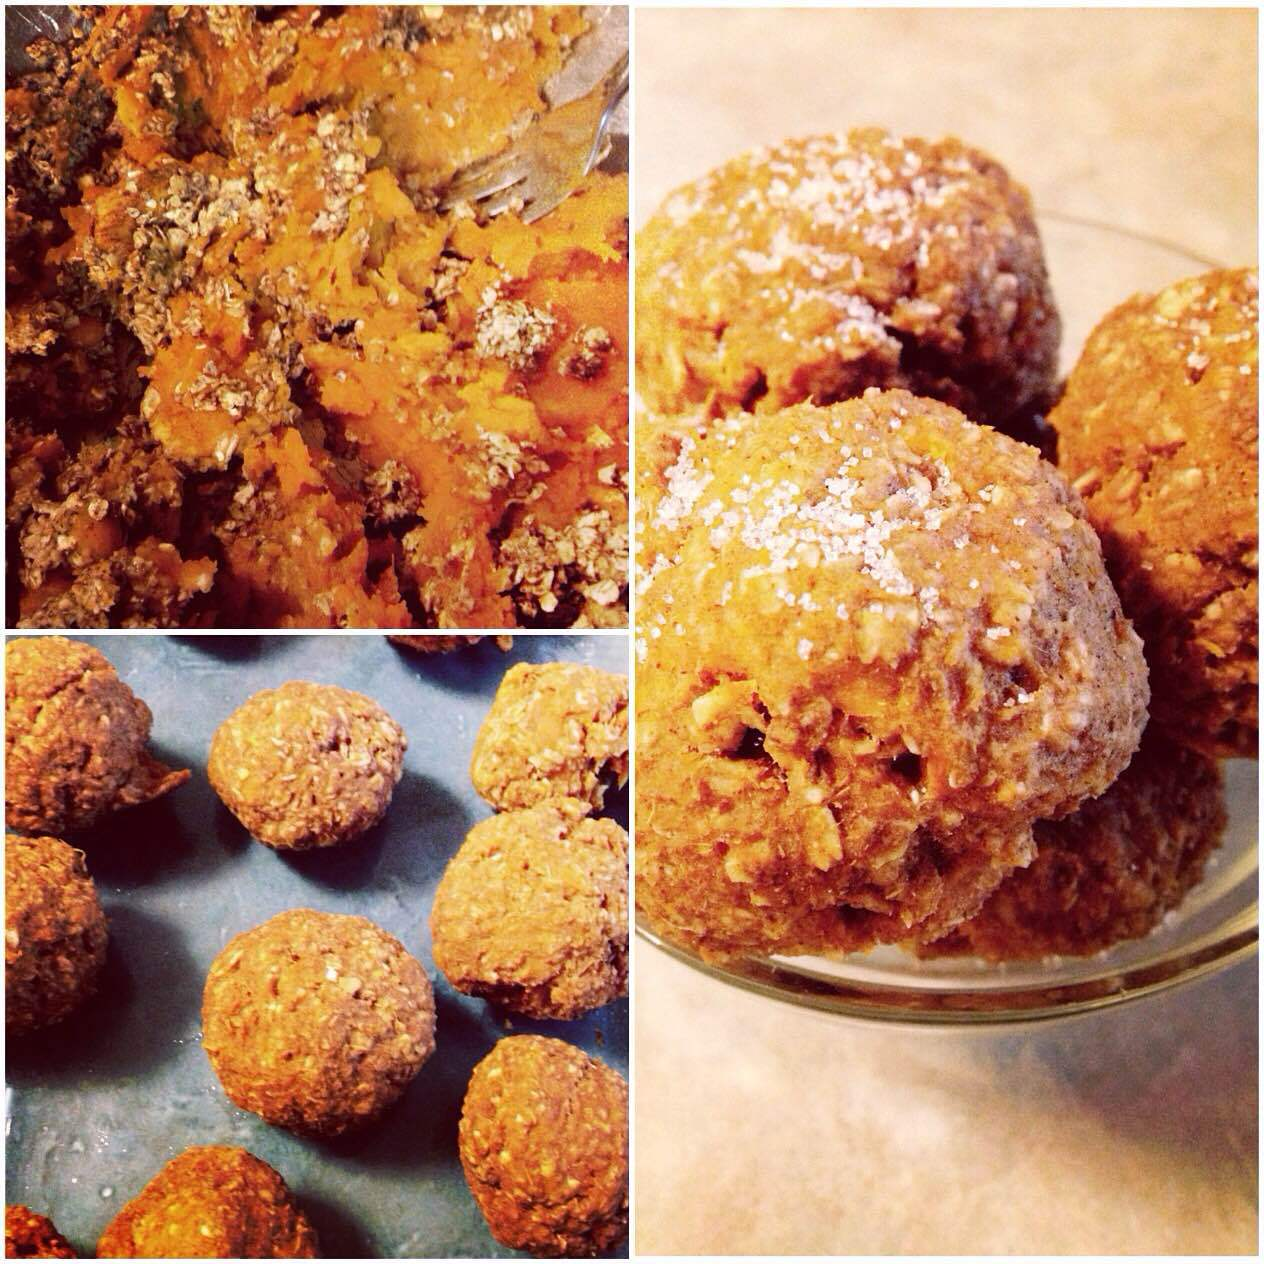 Cinnamon Oatmeal & Sweet Potato Timbits